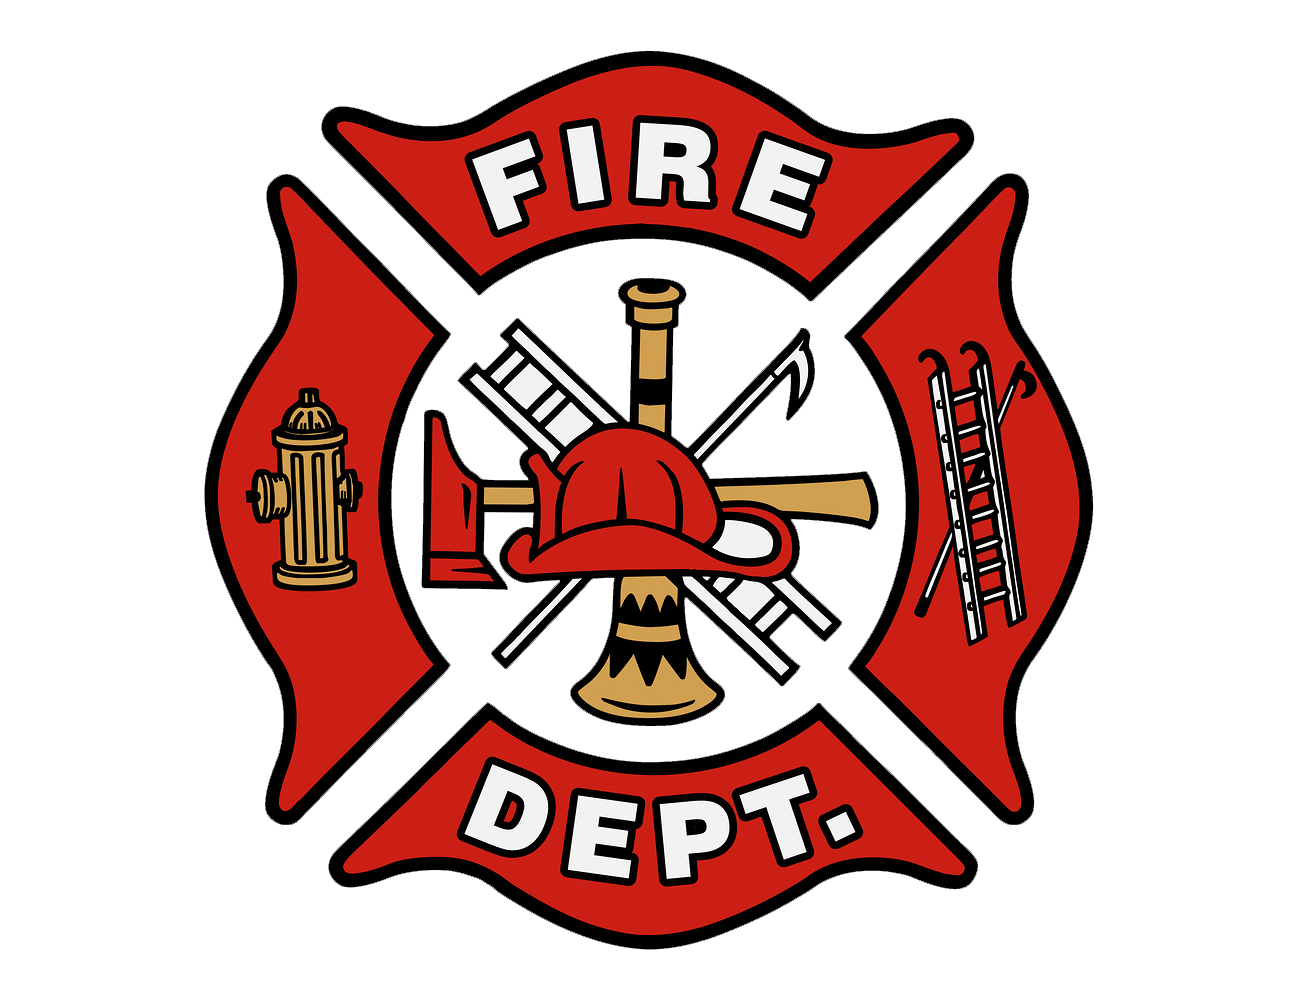 Fire Dept Symbol Image collections - meaning of text symbols svg transparent stock